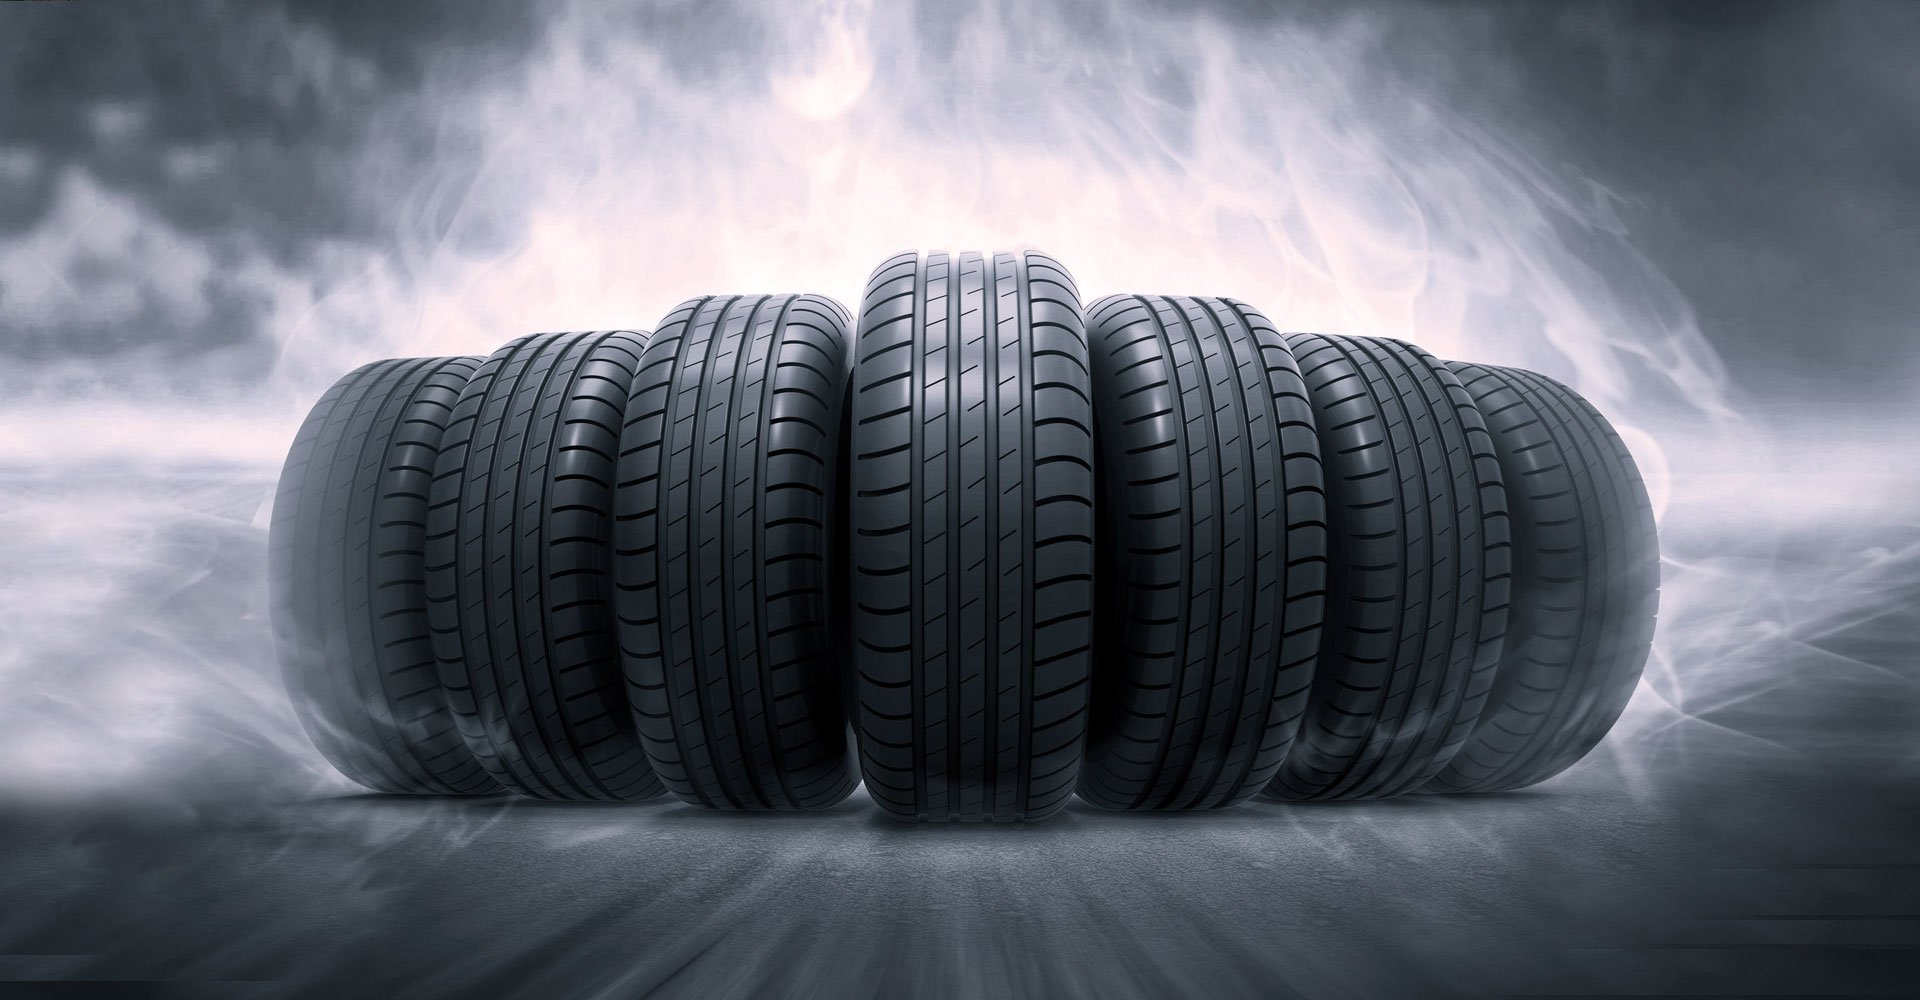 digital tyres image